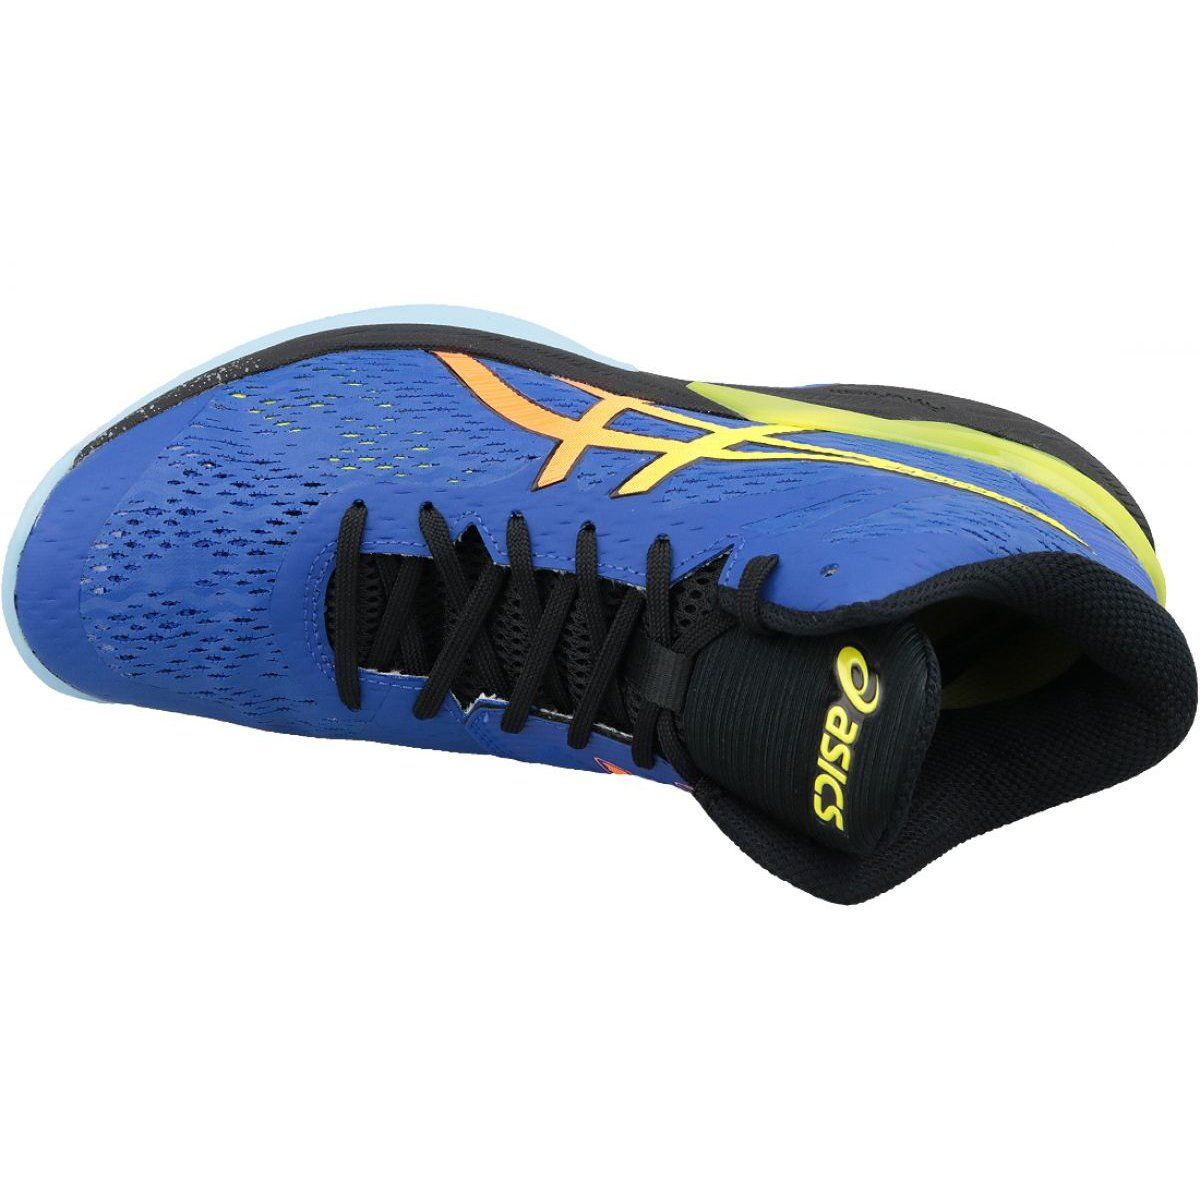 Asics Sky Elite Ff Mt M 1051a032 400 Volleyball Shoes Blue Blue Mens Volleyball Shoes Volleyball Shoes Blue Shoes